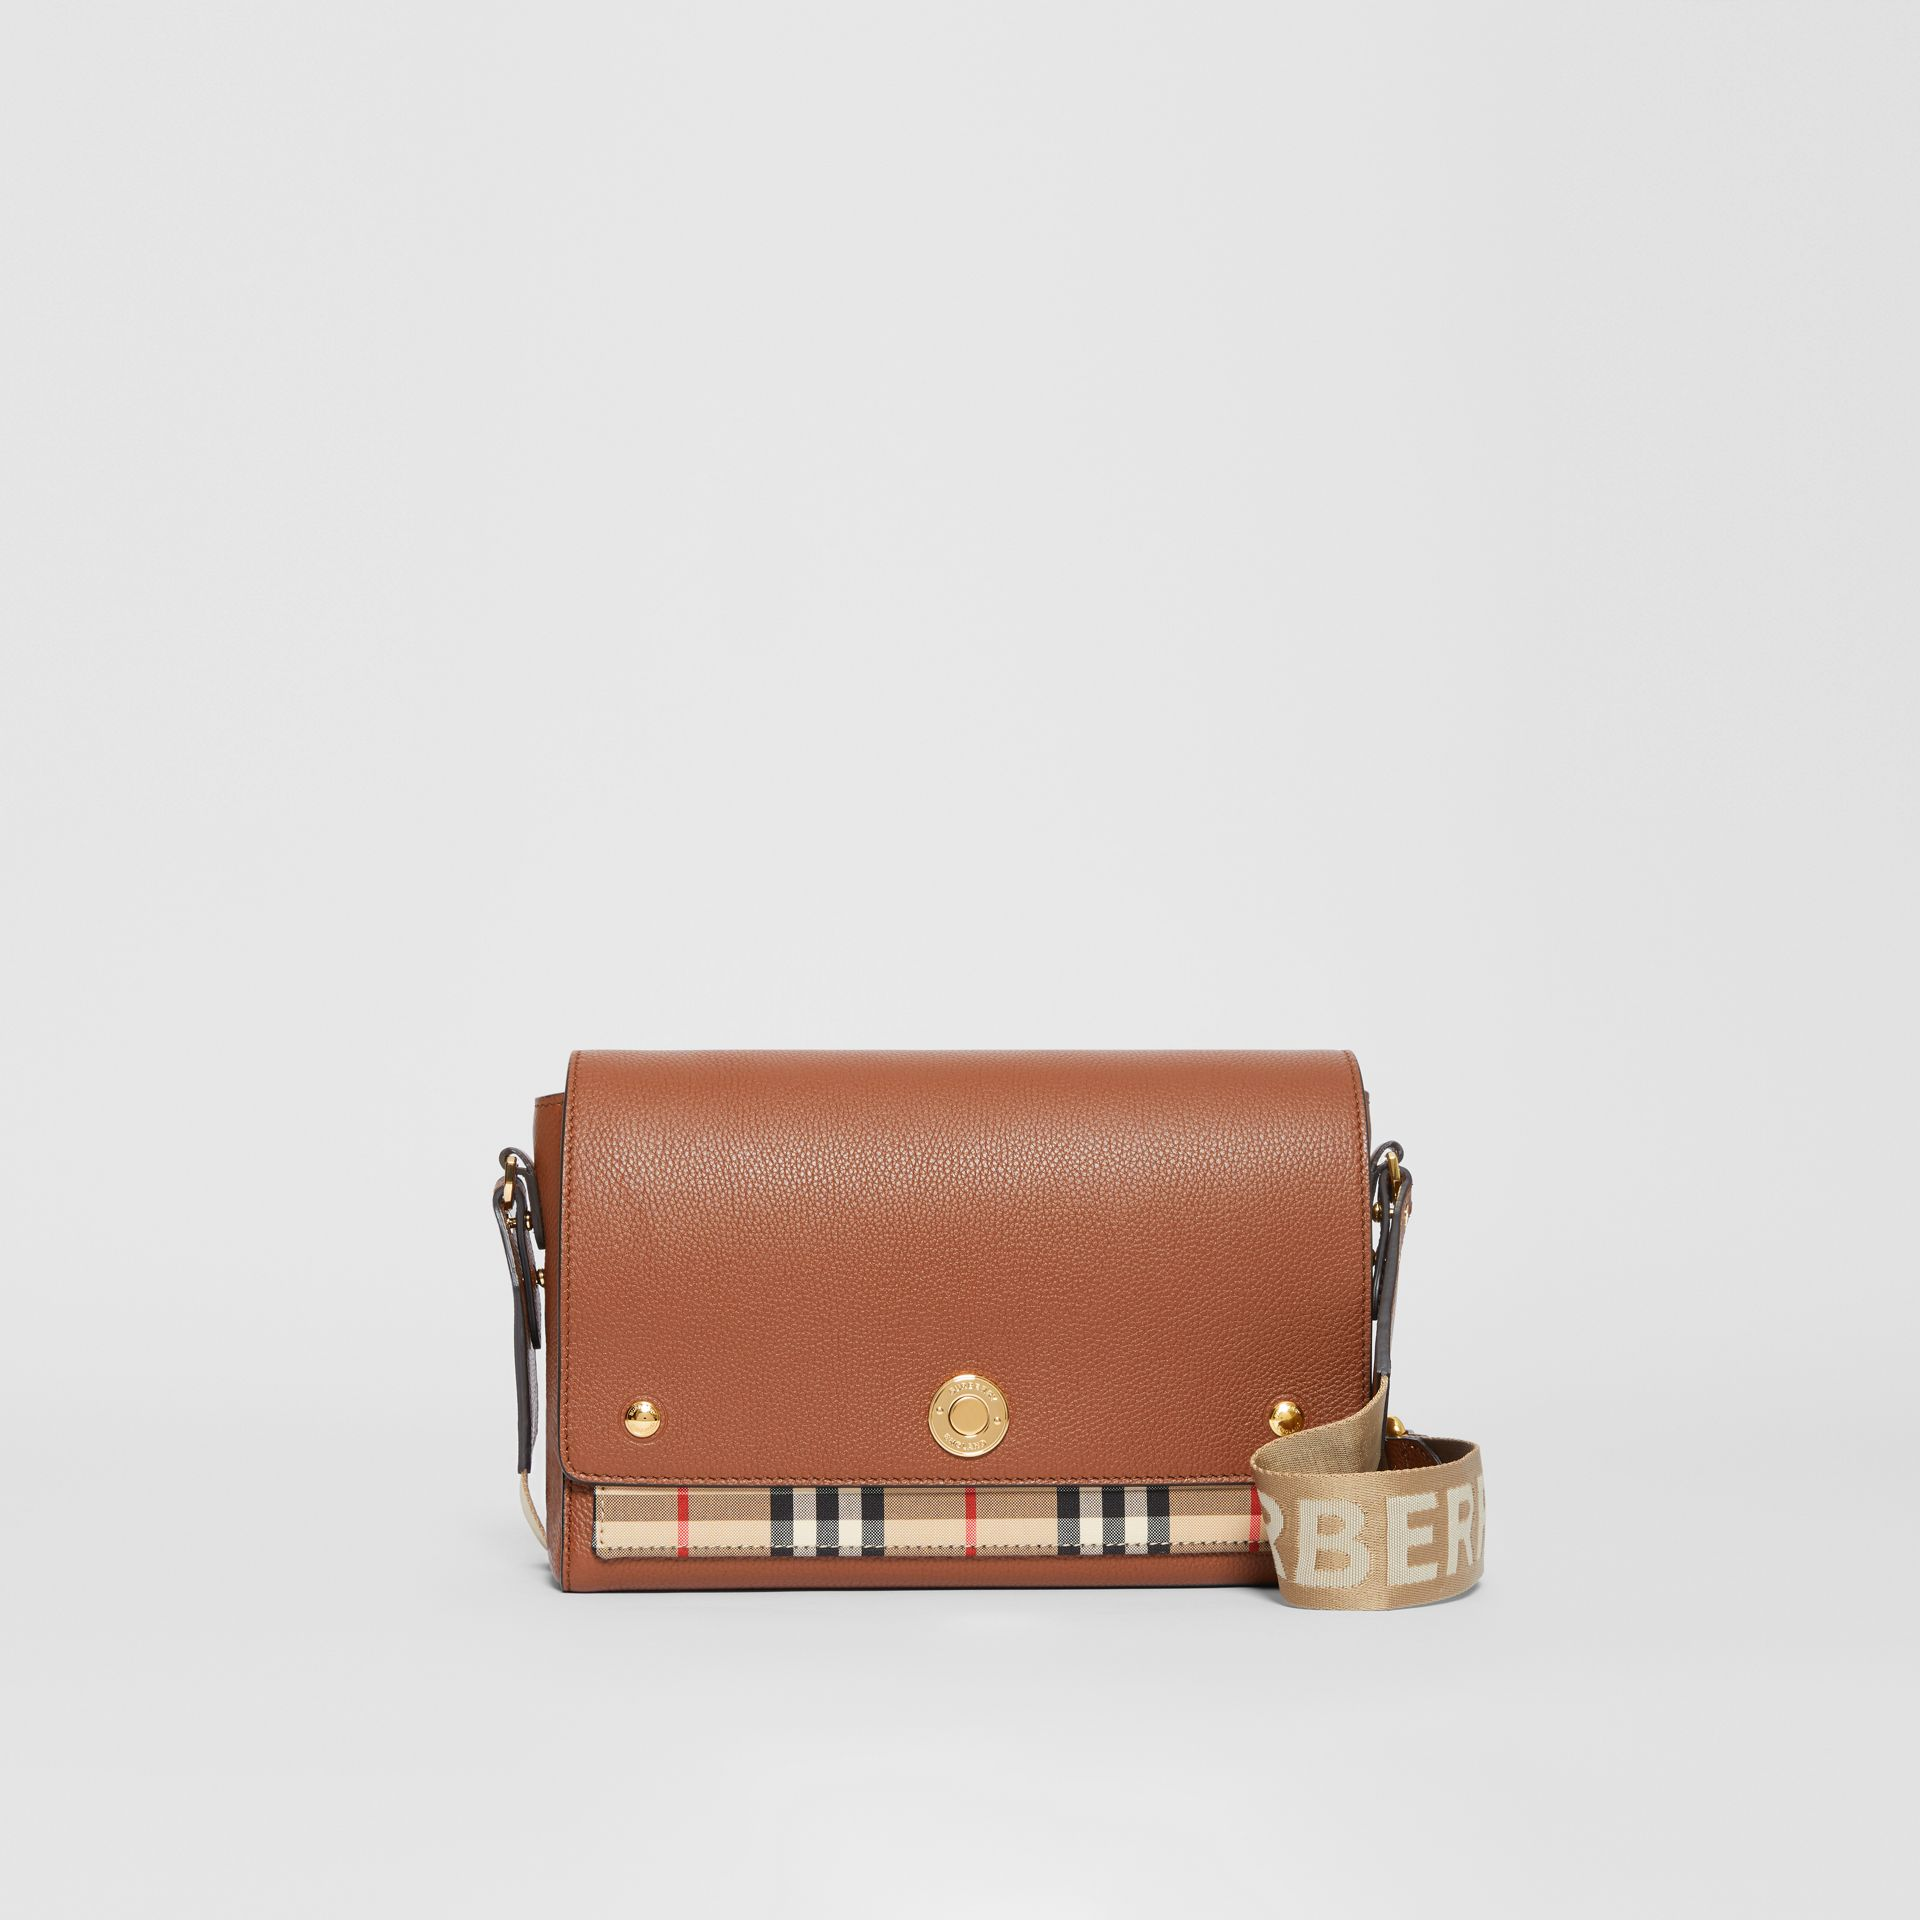 Leather and Vintage Check Note Crossbody Bag in Tan - Women | Burberry - gallery image 0